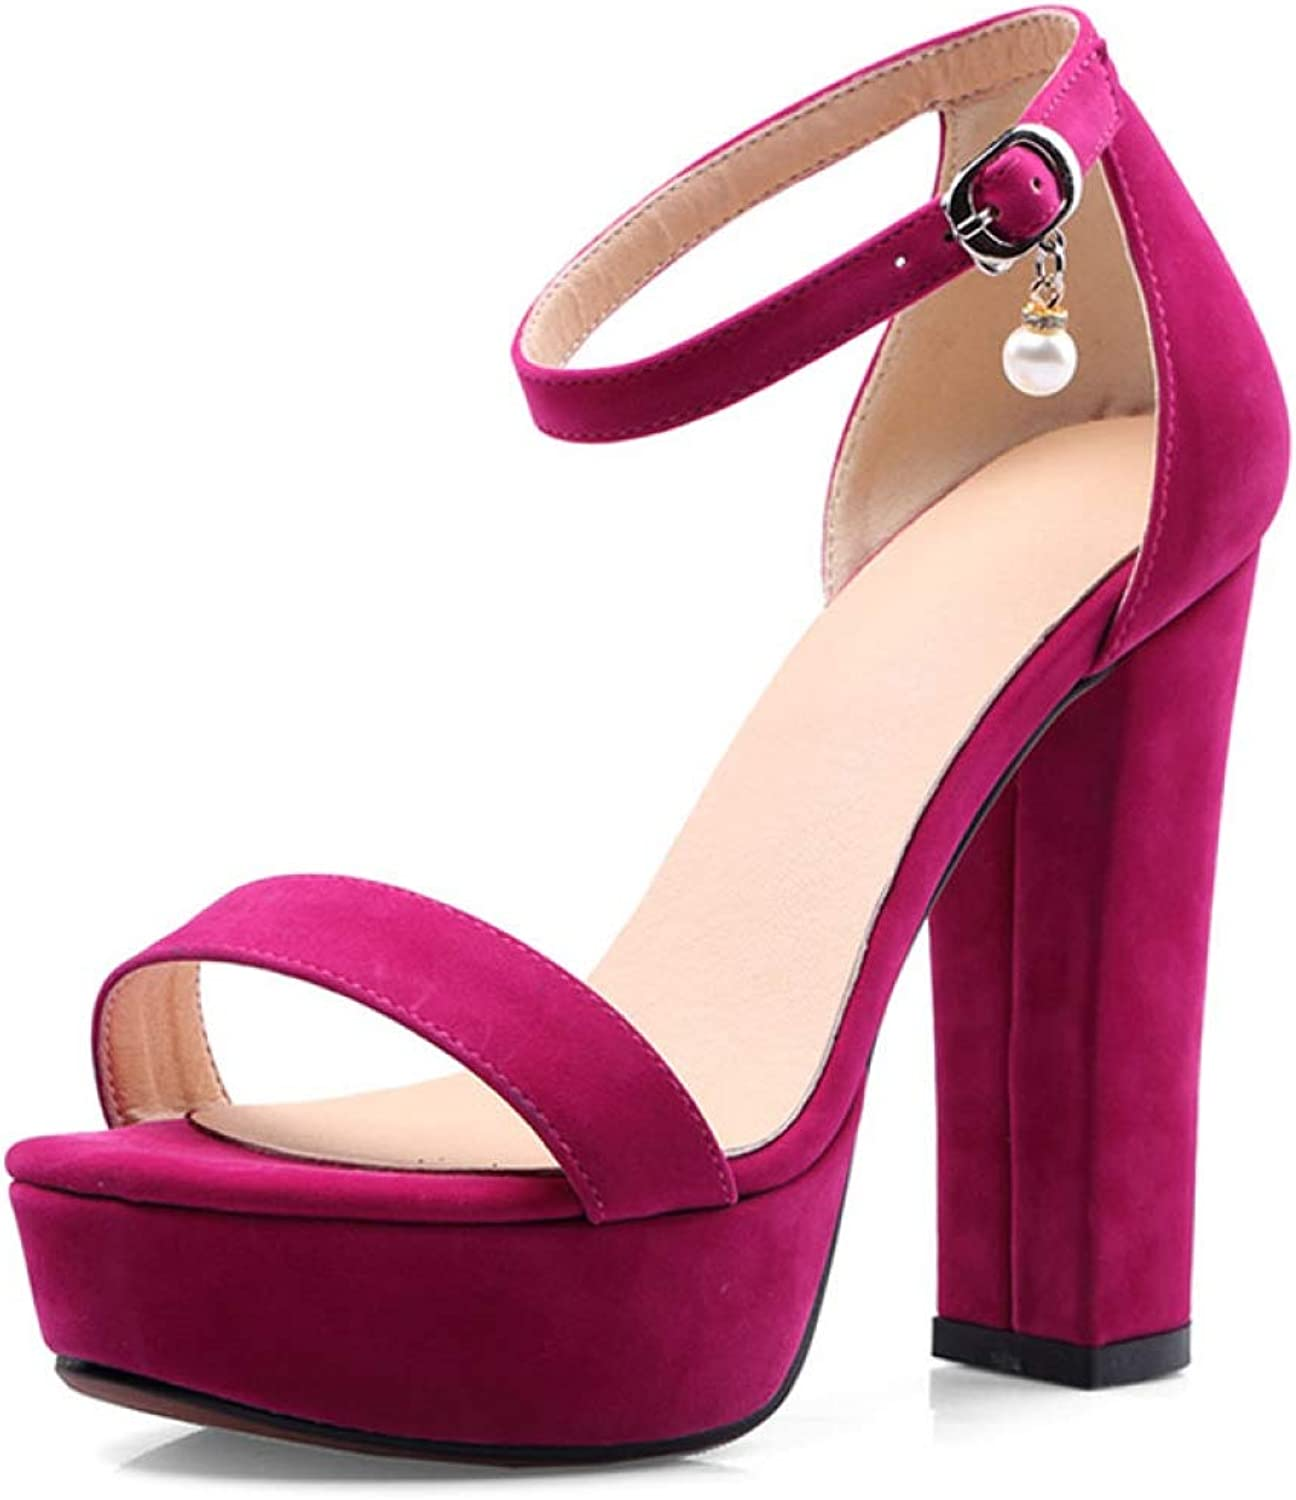 T-JULY Platform Sandals for Women High Heel Concise Buckle Ankle Strap Bride Summer Fashion Ladies shoes